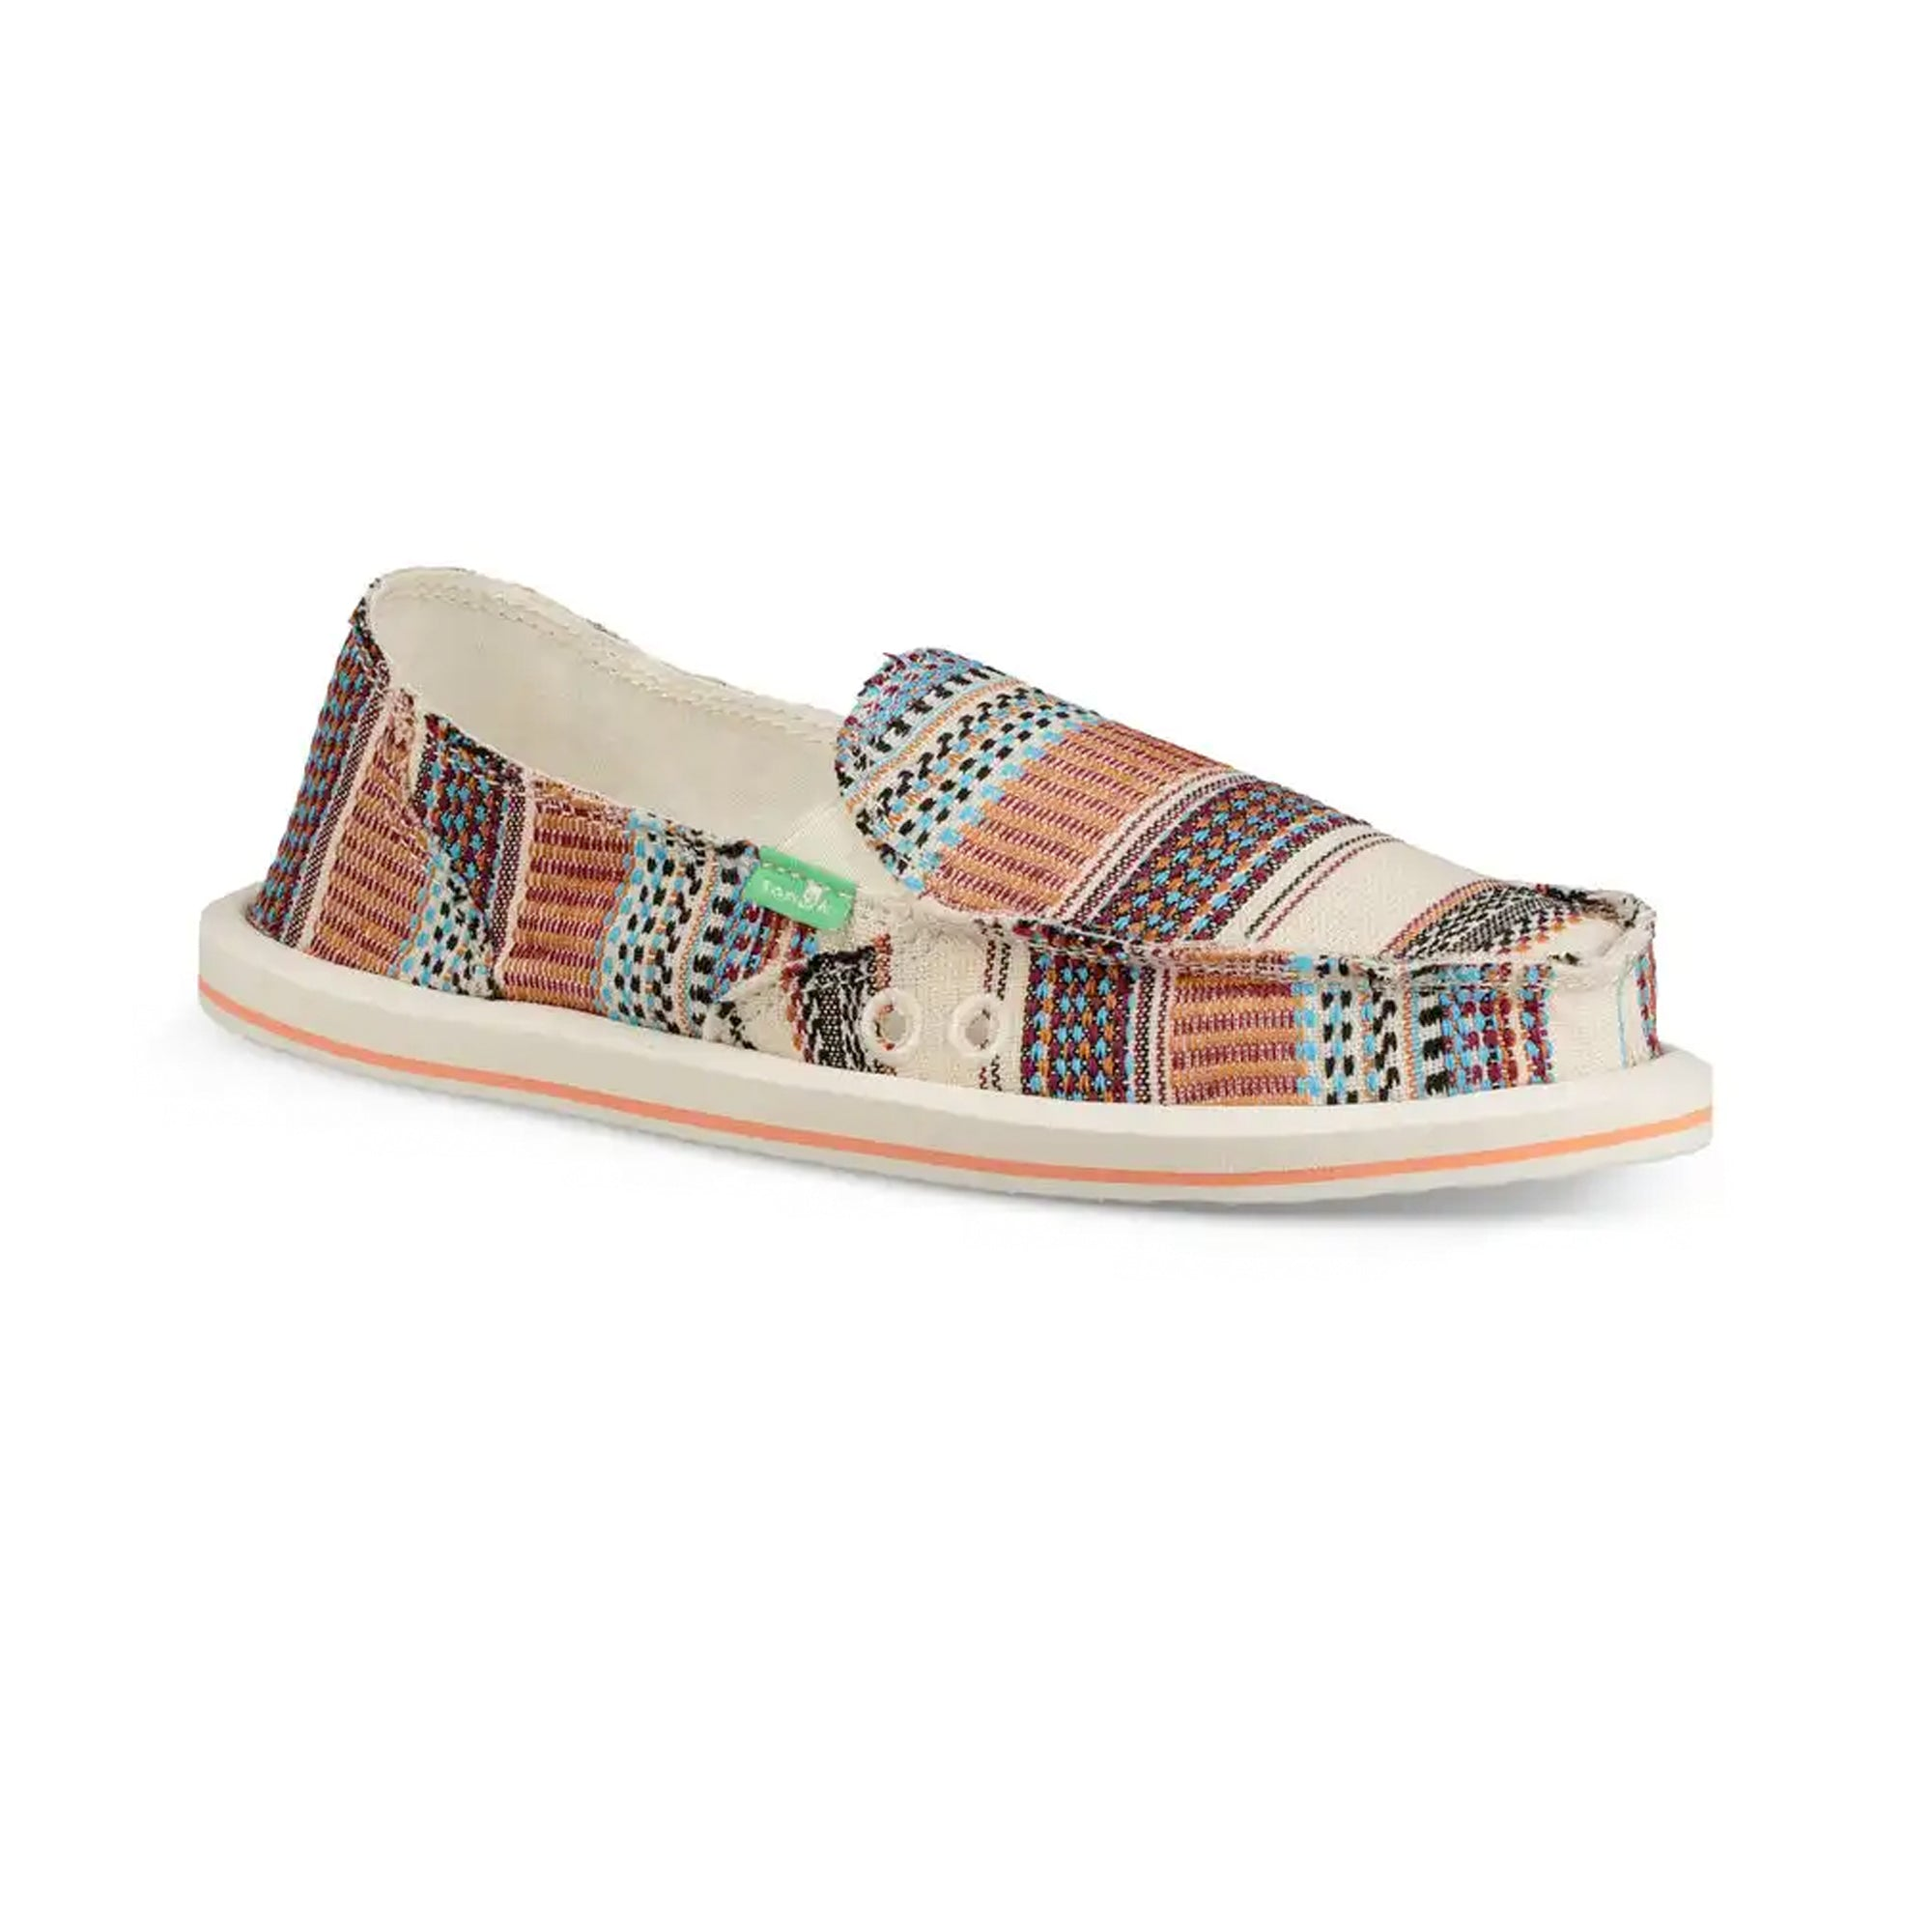 Sanuk Donna Tribal Women's Shoes